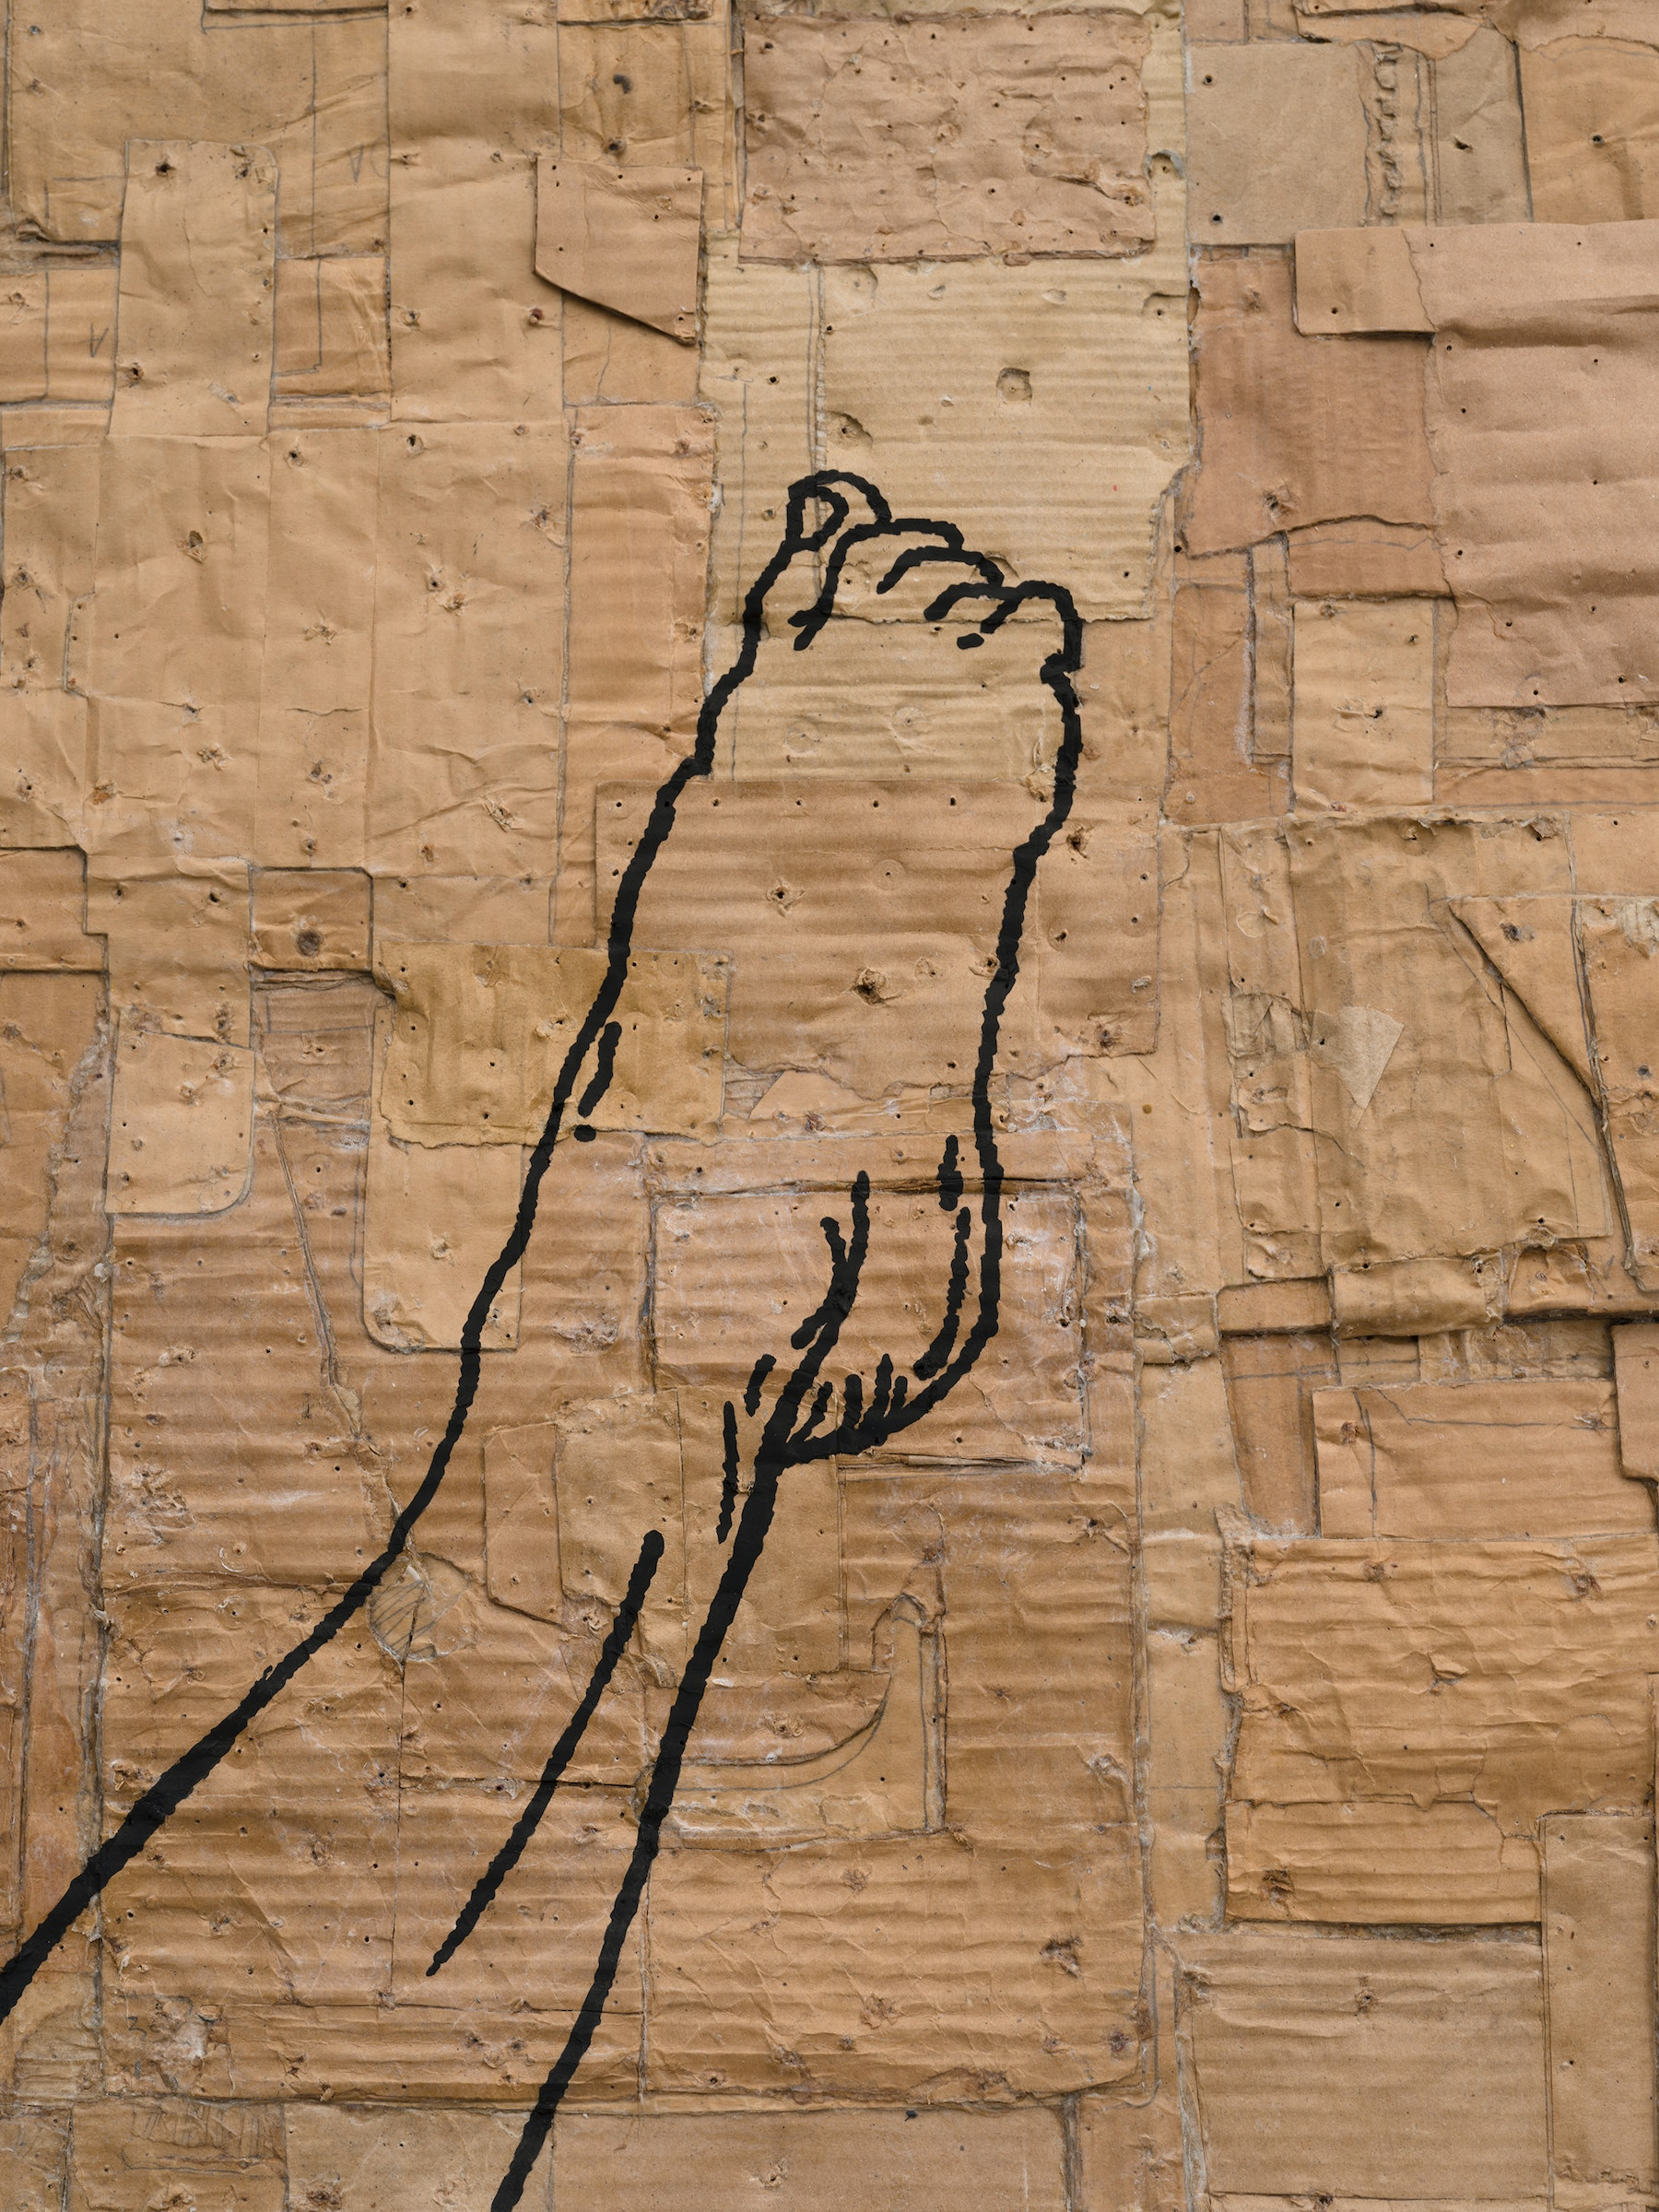 """Andrea Bowers """"Fighting Women, Ivy, Jump Axe Kick,"""" 2021 Acrylic and pigment ink on cardboard 95 ¹⁄₂"""" x 61 ¹⁄₂"""" x 5"""" [HxWxD] (242.57 x 156.21 x 12.7 cm) Inventory #BOW576 Courtesy of the artist and Vielmetter Los Angeles Photo credit: Jeff McLane"""